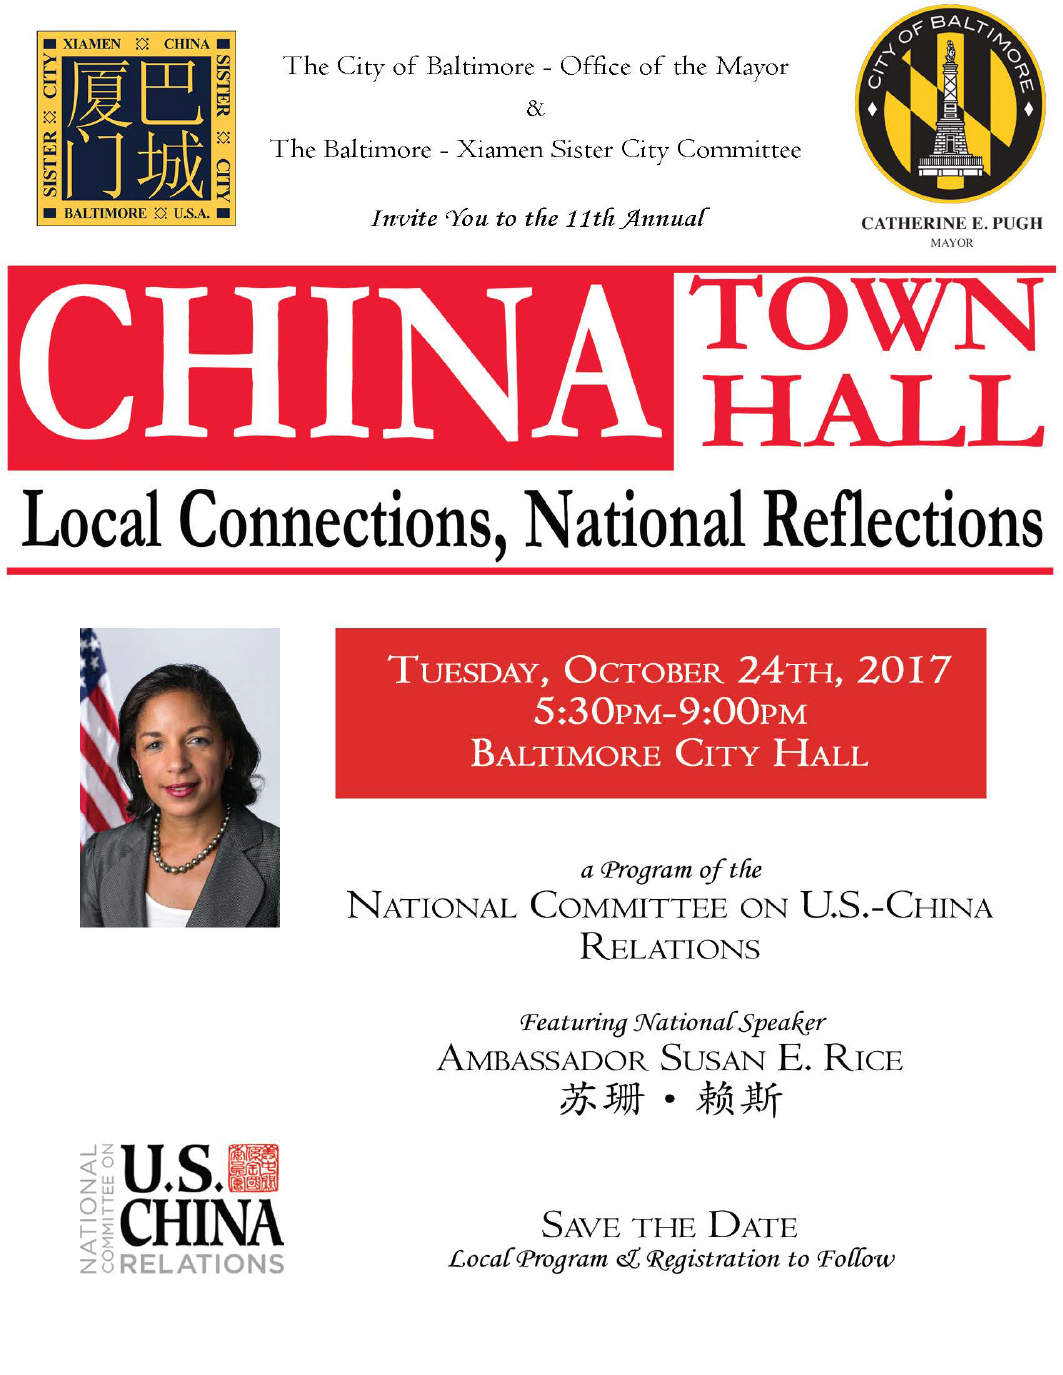 China Town Hall 2017 save-the-date flyer image